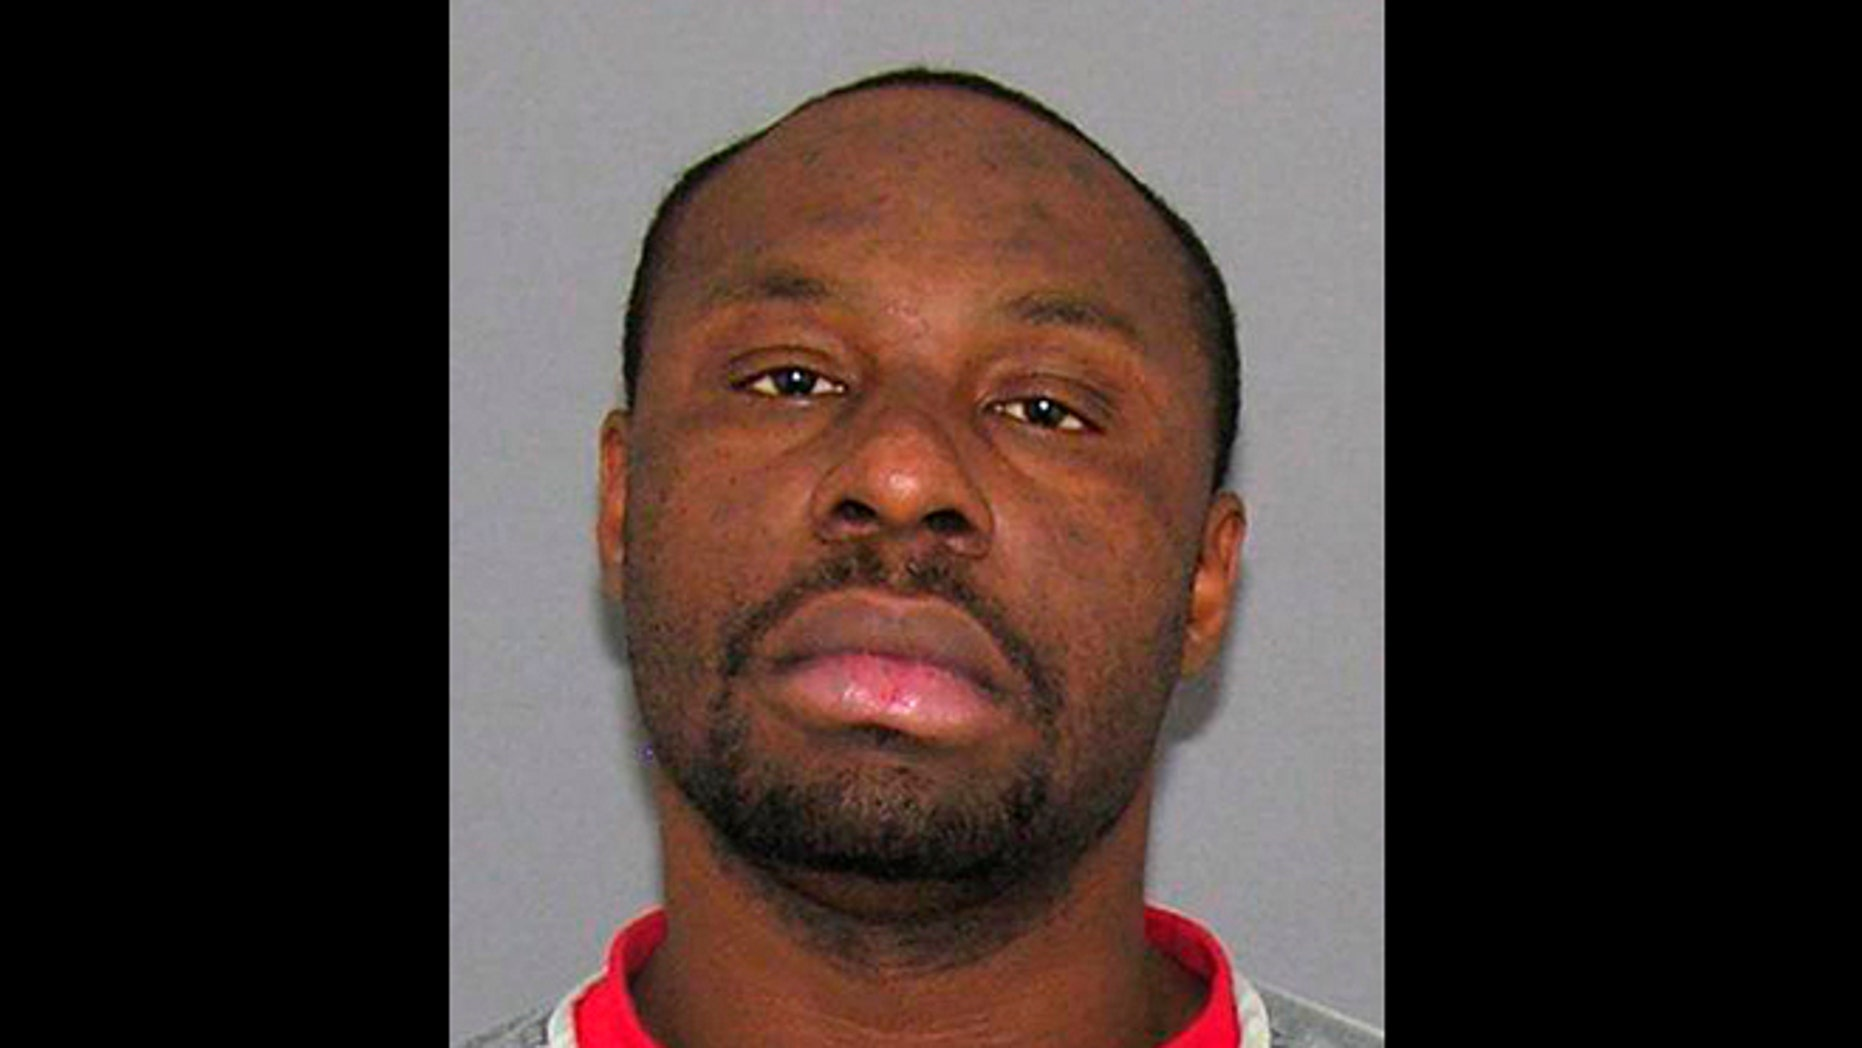 This undated file photo provided by the Hamilton County Sheriff's Department shows Ricardo Woods, of Cincinnati. Woods was found guilty Thursday, May 16, 2013, in the shooting death of a man who authorities say identified his assailant by blinking his eyes while paralyzed and hooked up to a ventilator.